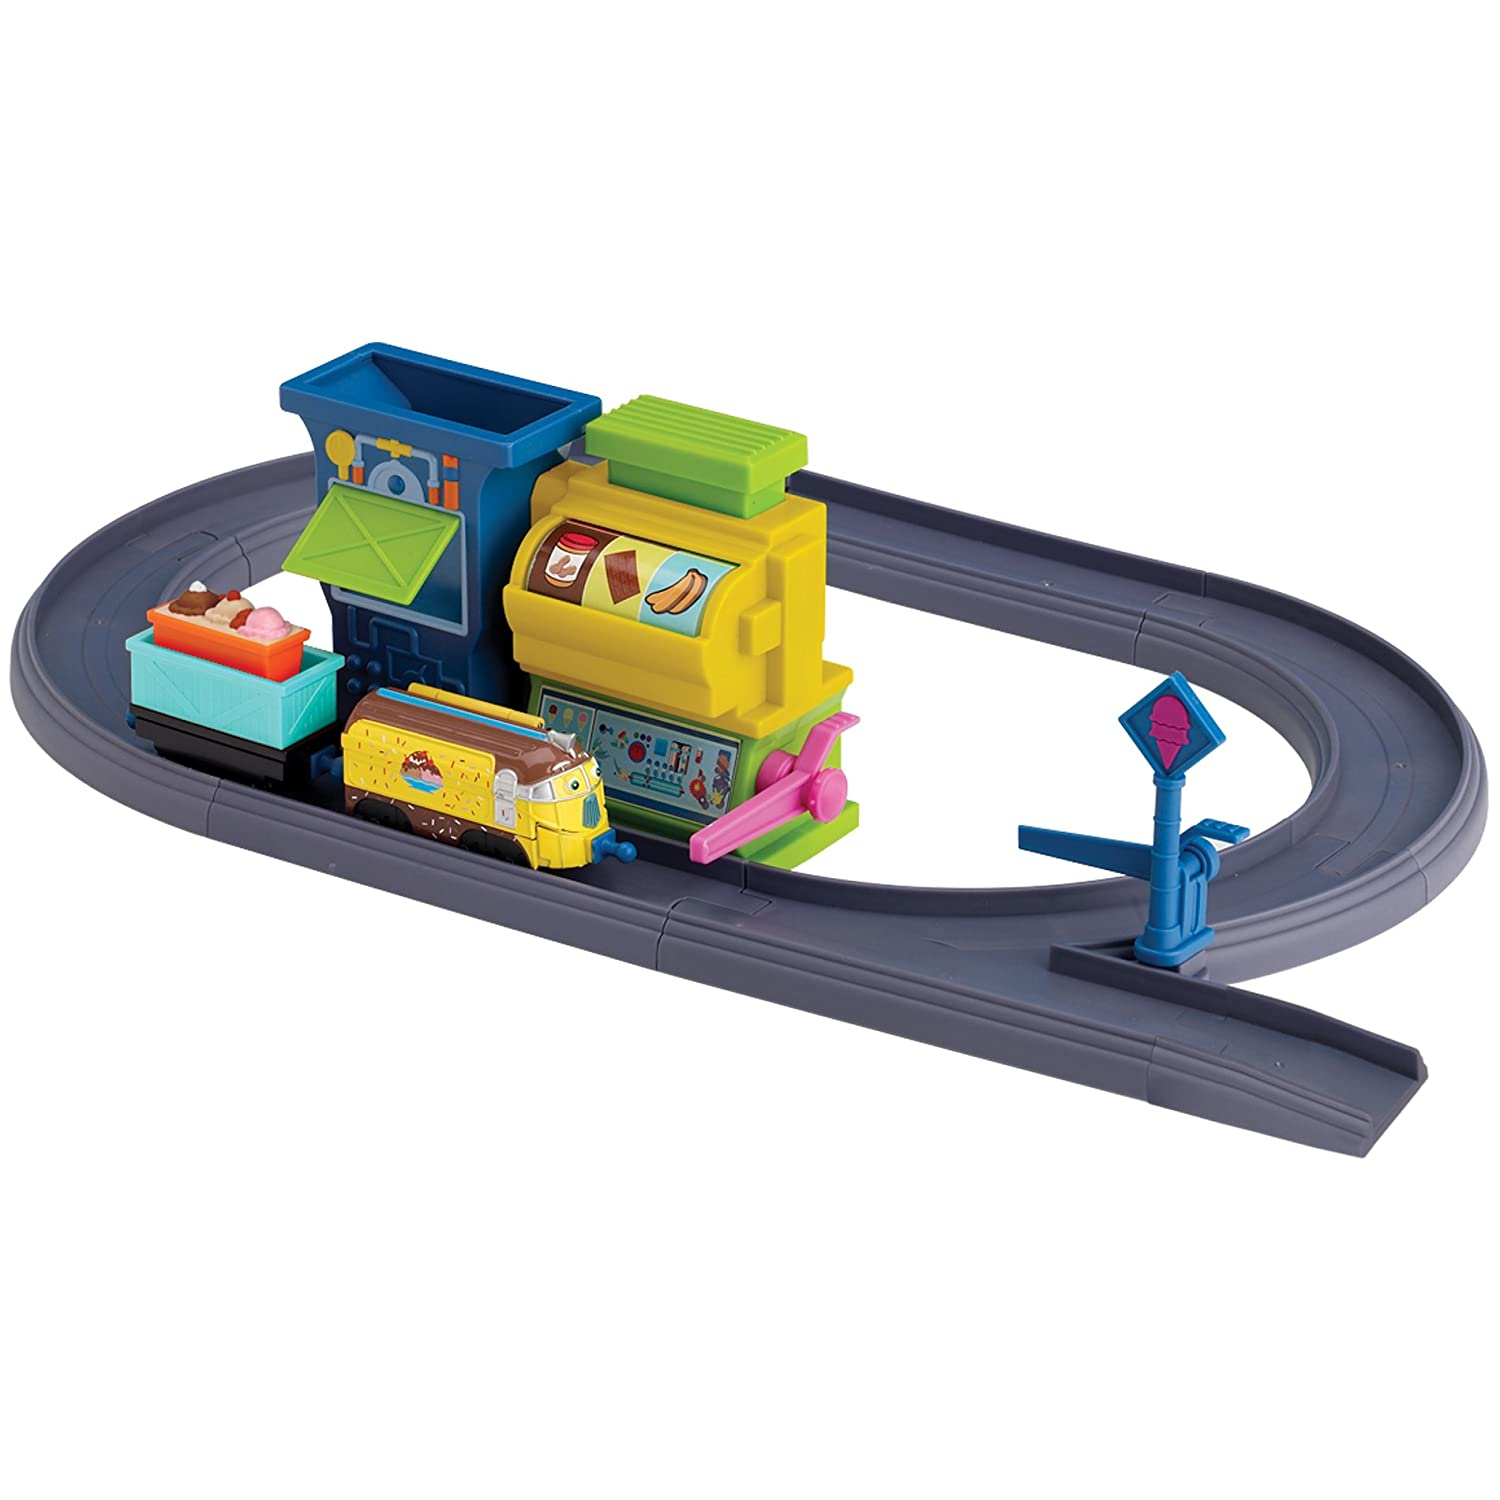 Amazon.com: Chuggington Die-Cast Badge Quest Ice Cream Training ...